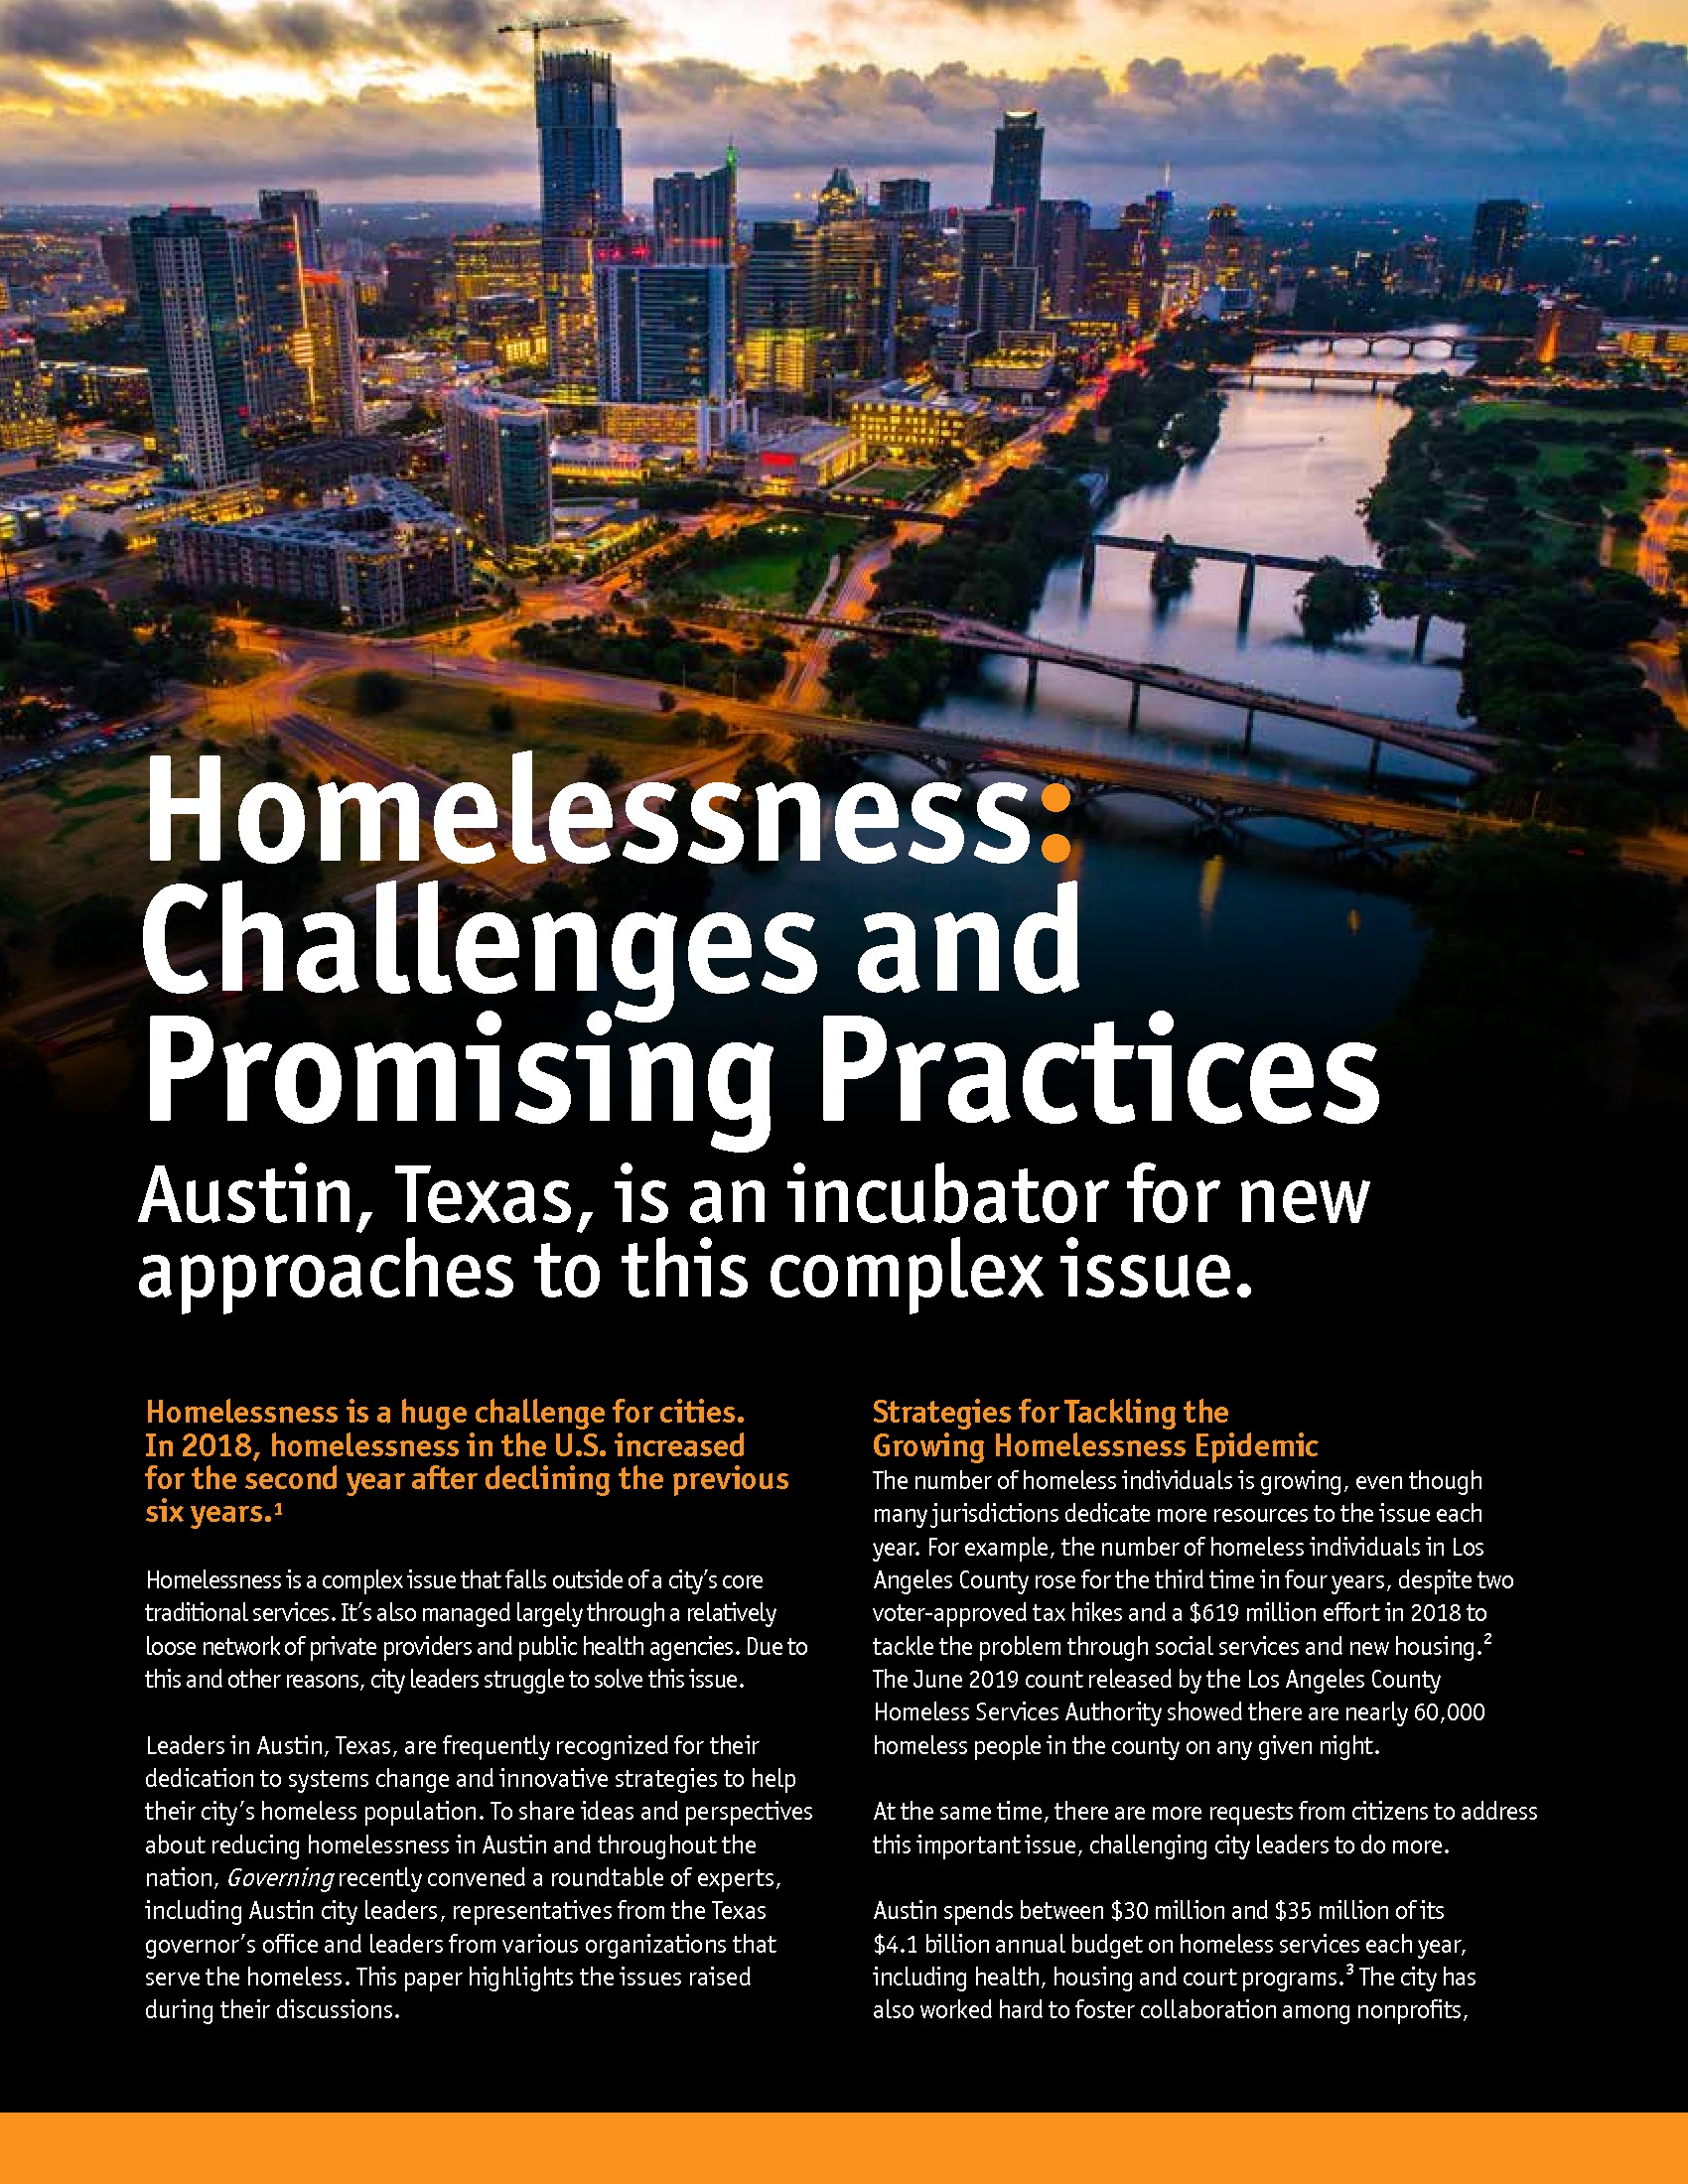 Homelessness: Challenges and Promising Practices